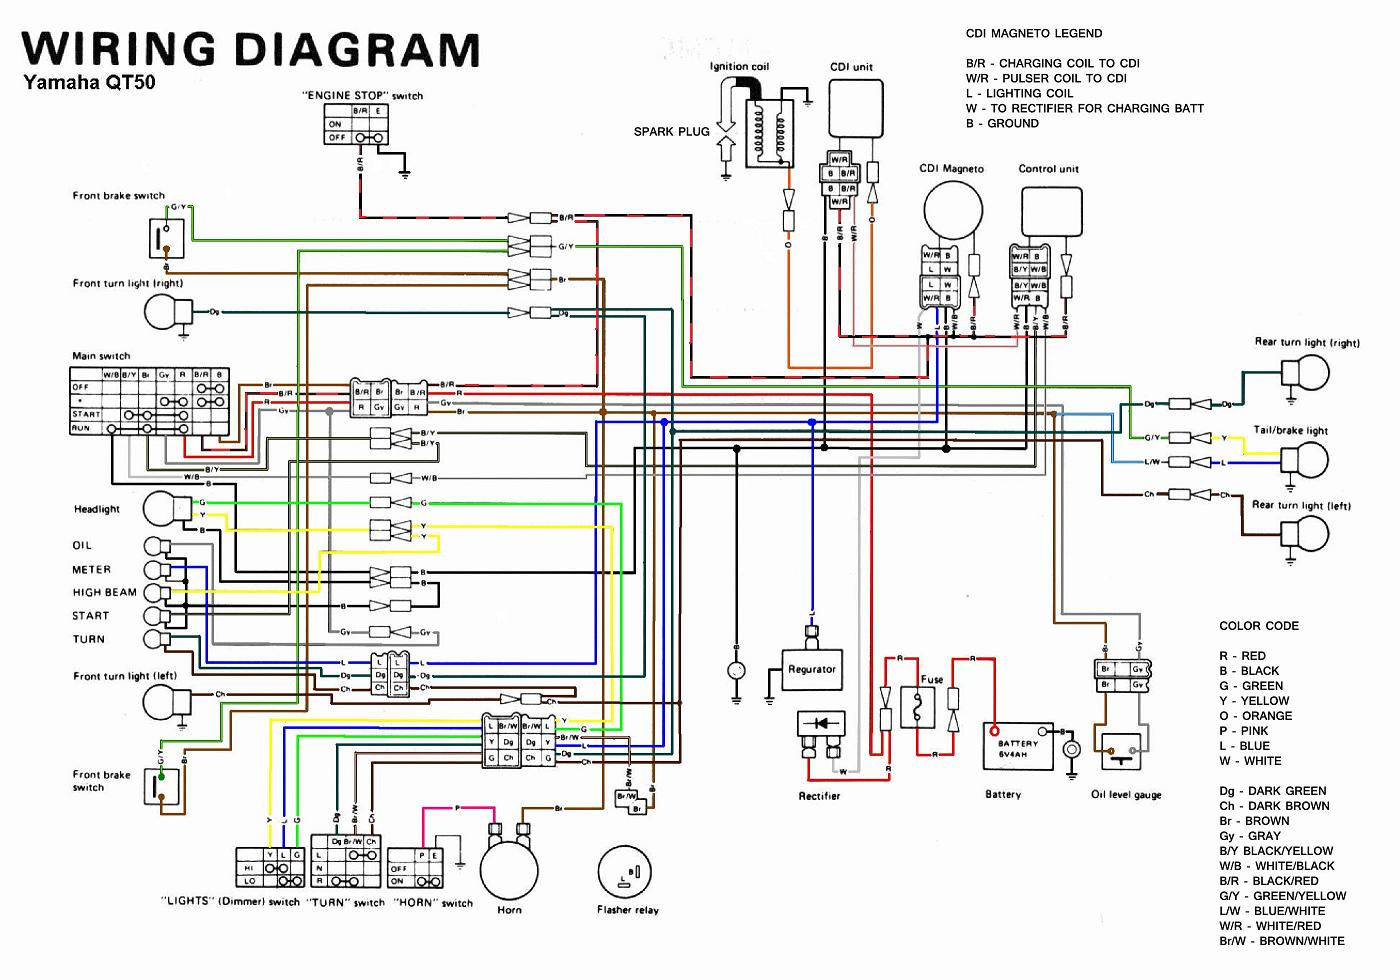 6 Wire Cdi Box Diagram Ktm Wiring Data Schema Yamaha Qt50 Luvin And Other Nopeds Rh Net 5 Scooter